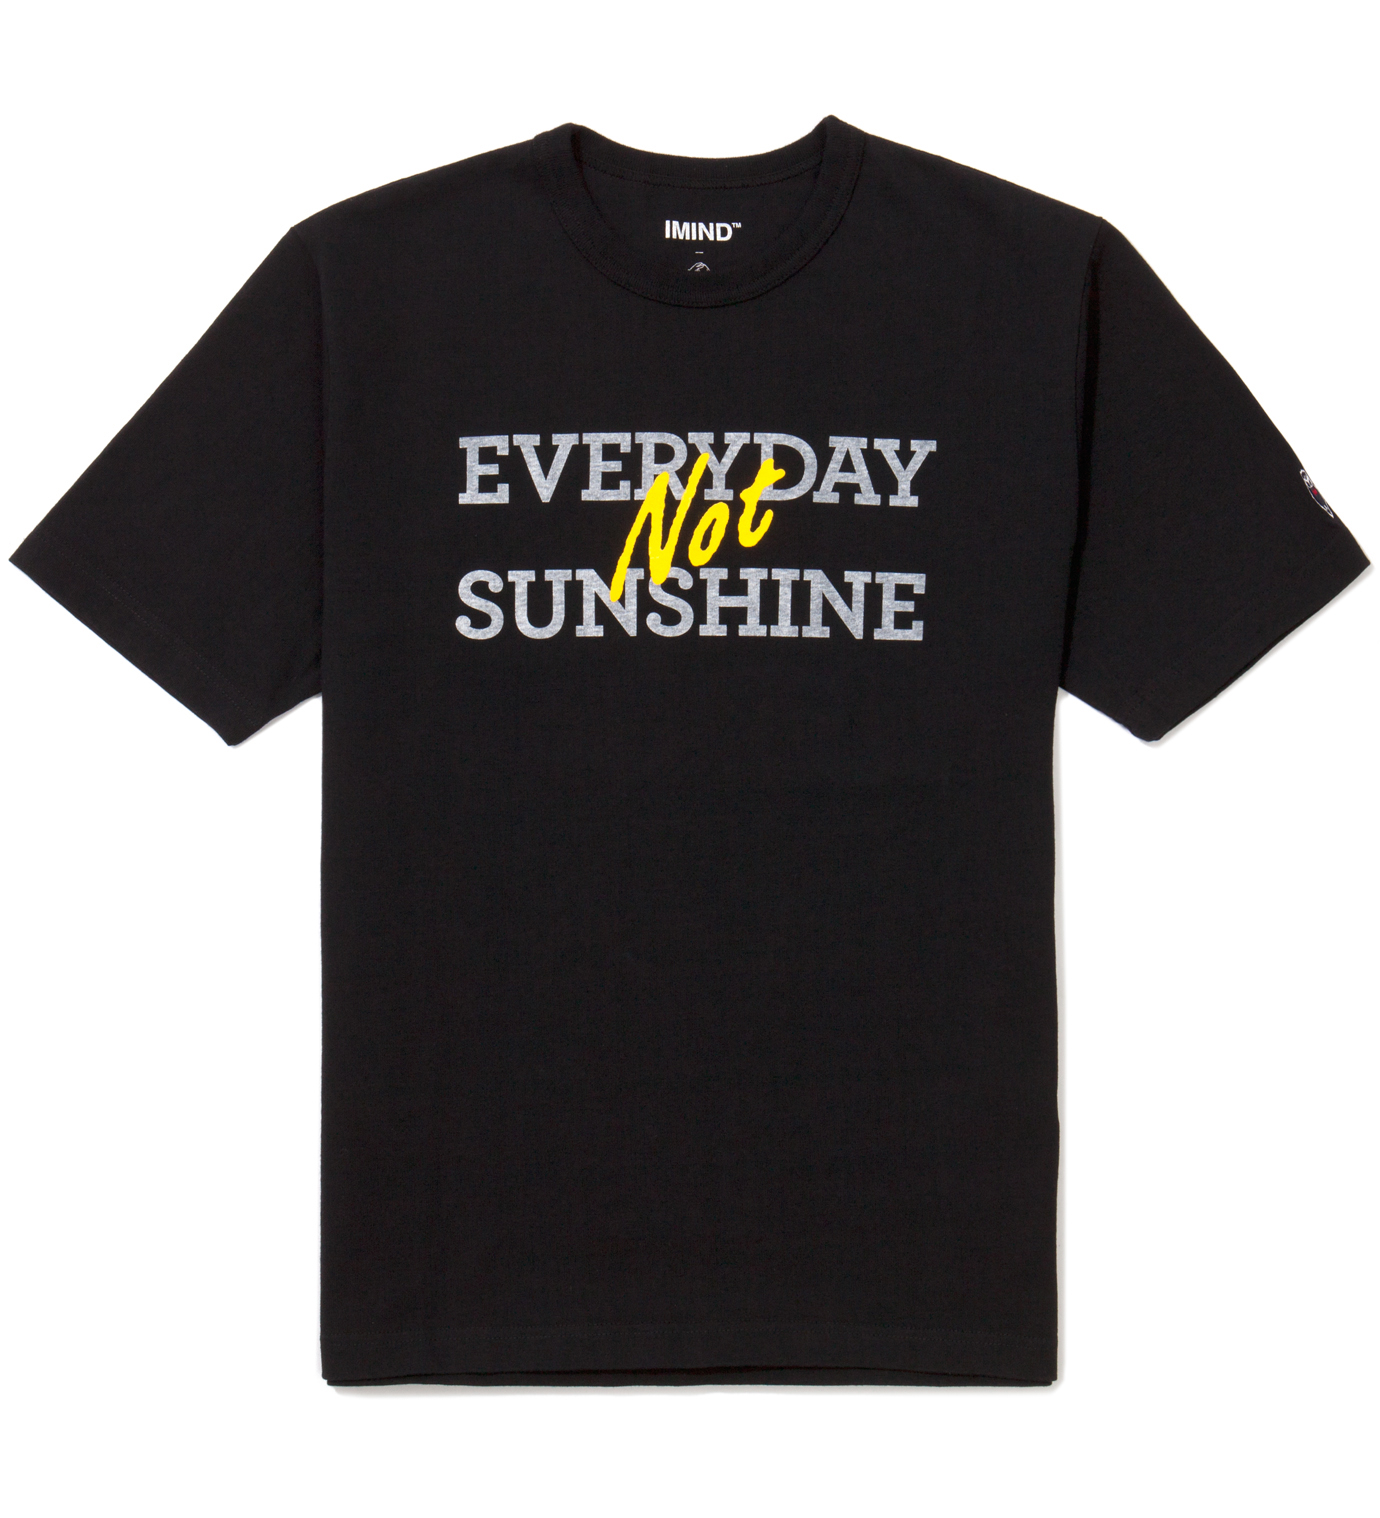 IMIND Black Everyday T-Shirt